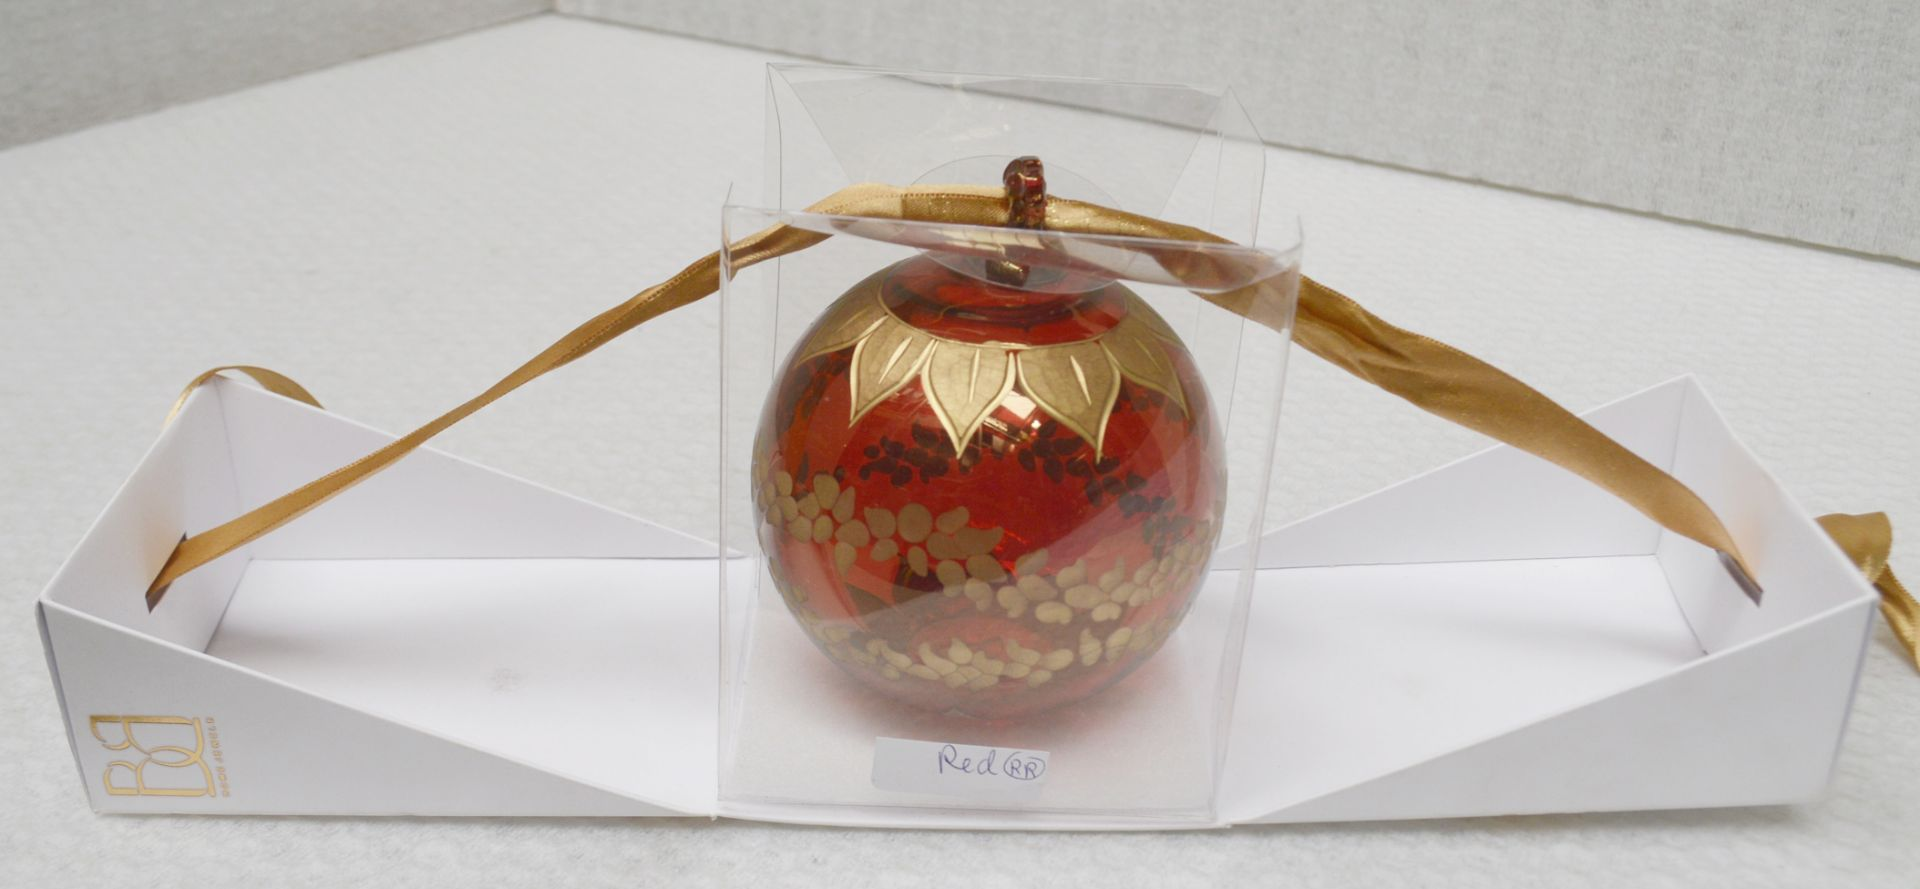 1 x BALDI 'Home Jewels' Italian Hand-crafted Artisan Christmas Tree Decoration In Red And Gold - - Image 2 of 5